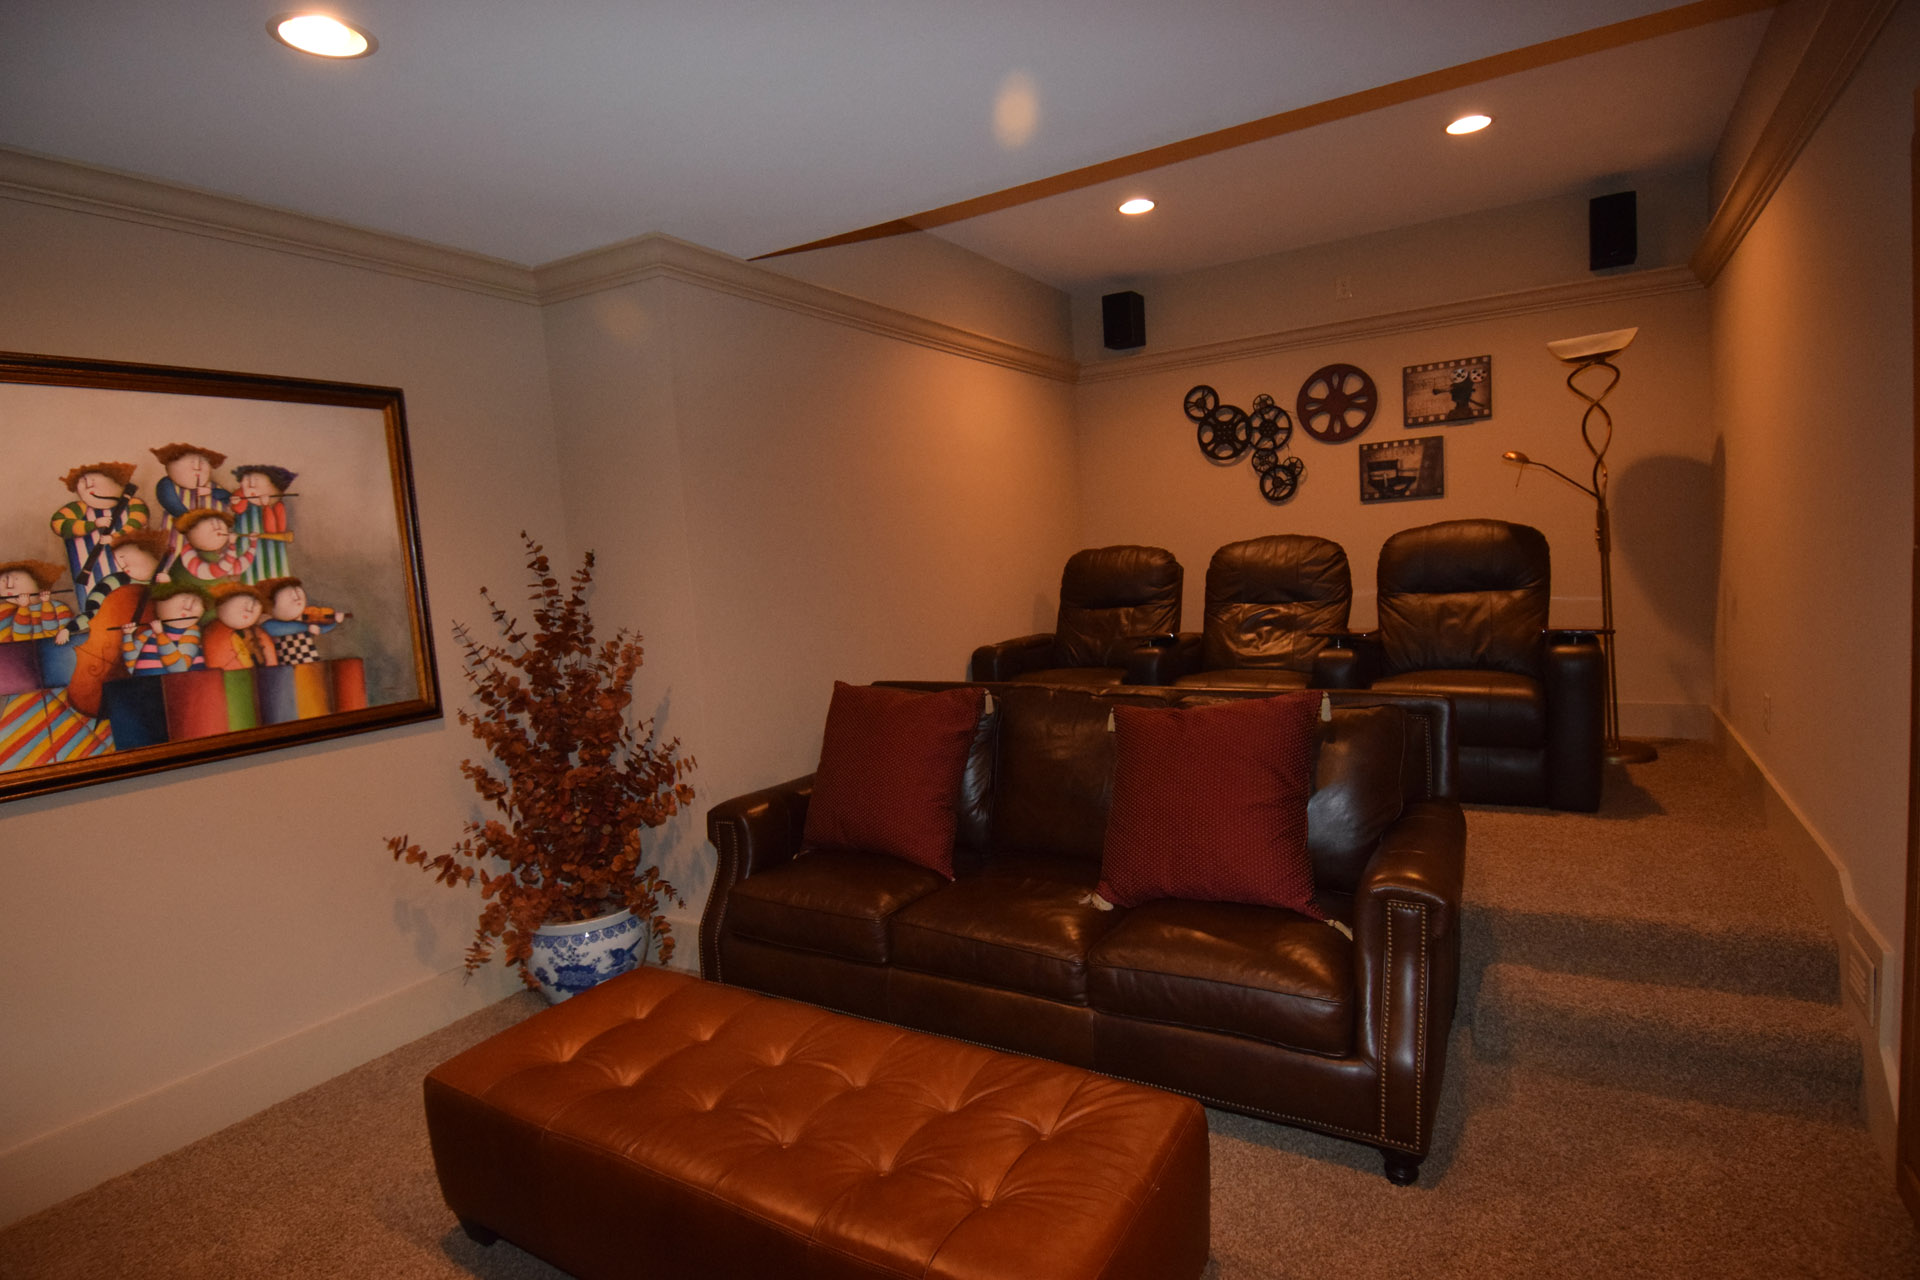 ShilohCreekModelHome_2017Revisions_Theater2.jpg